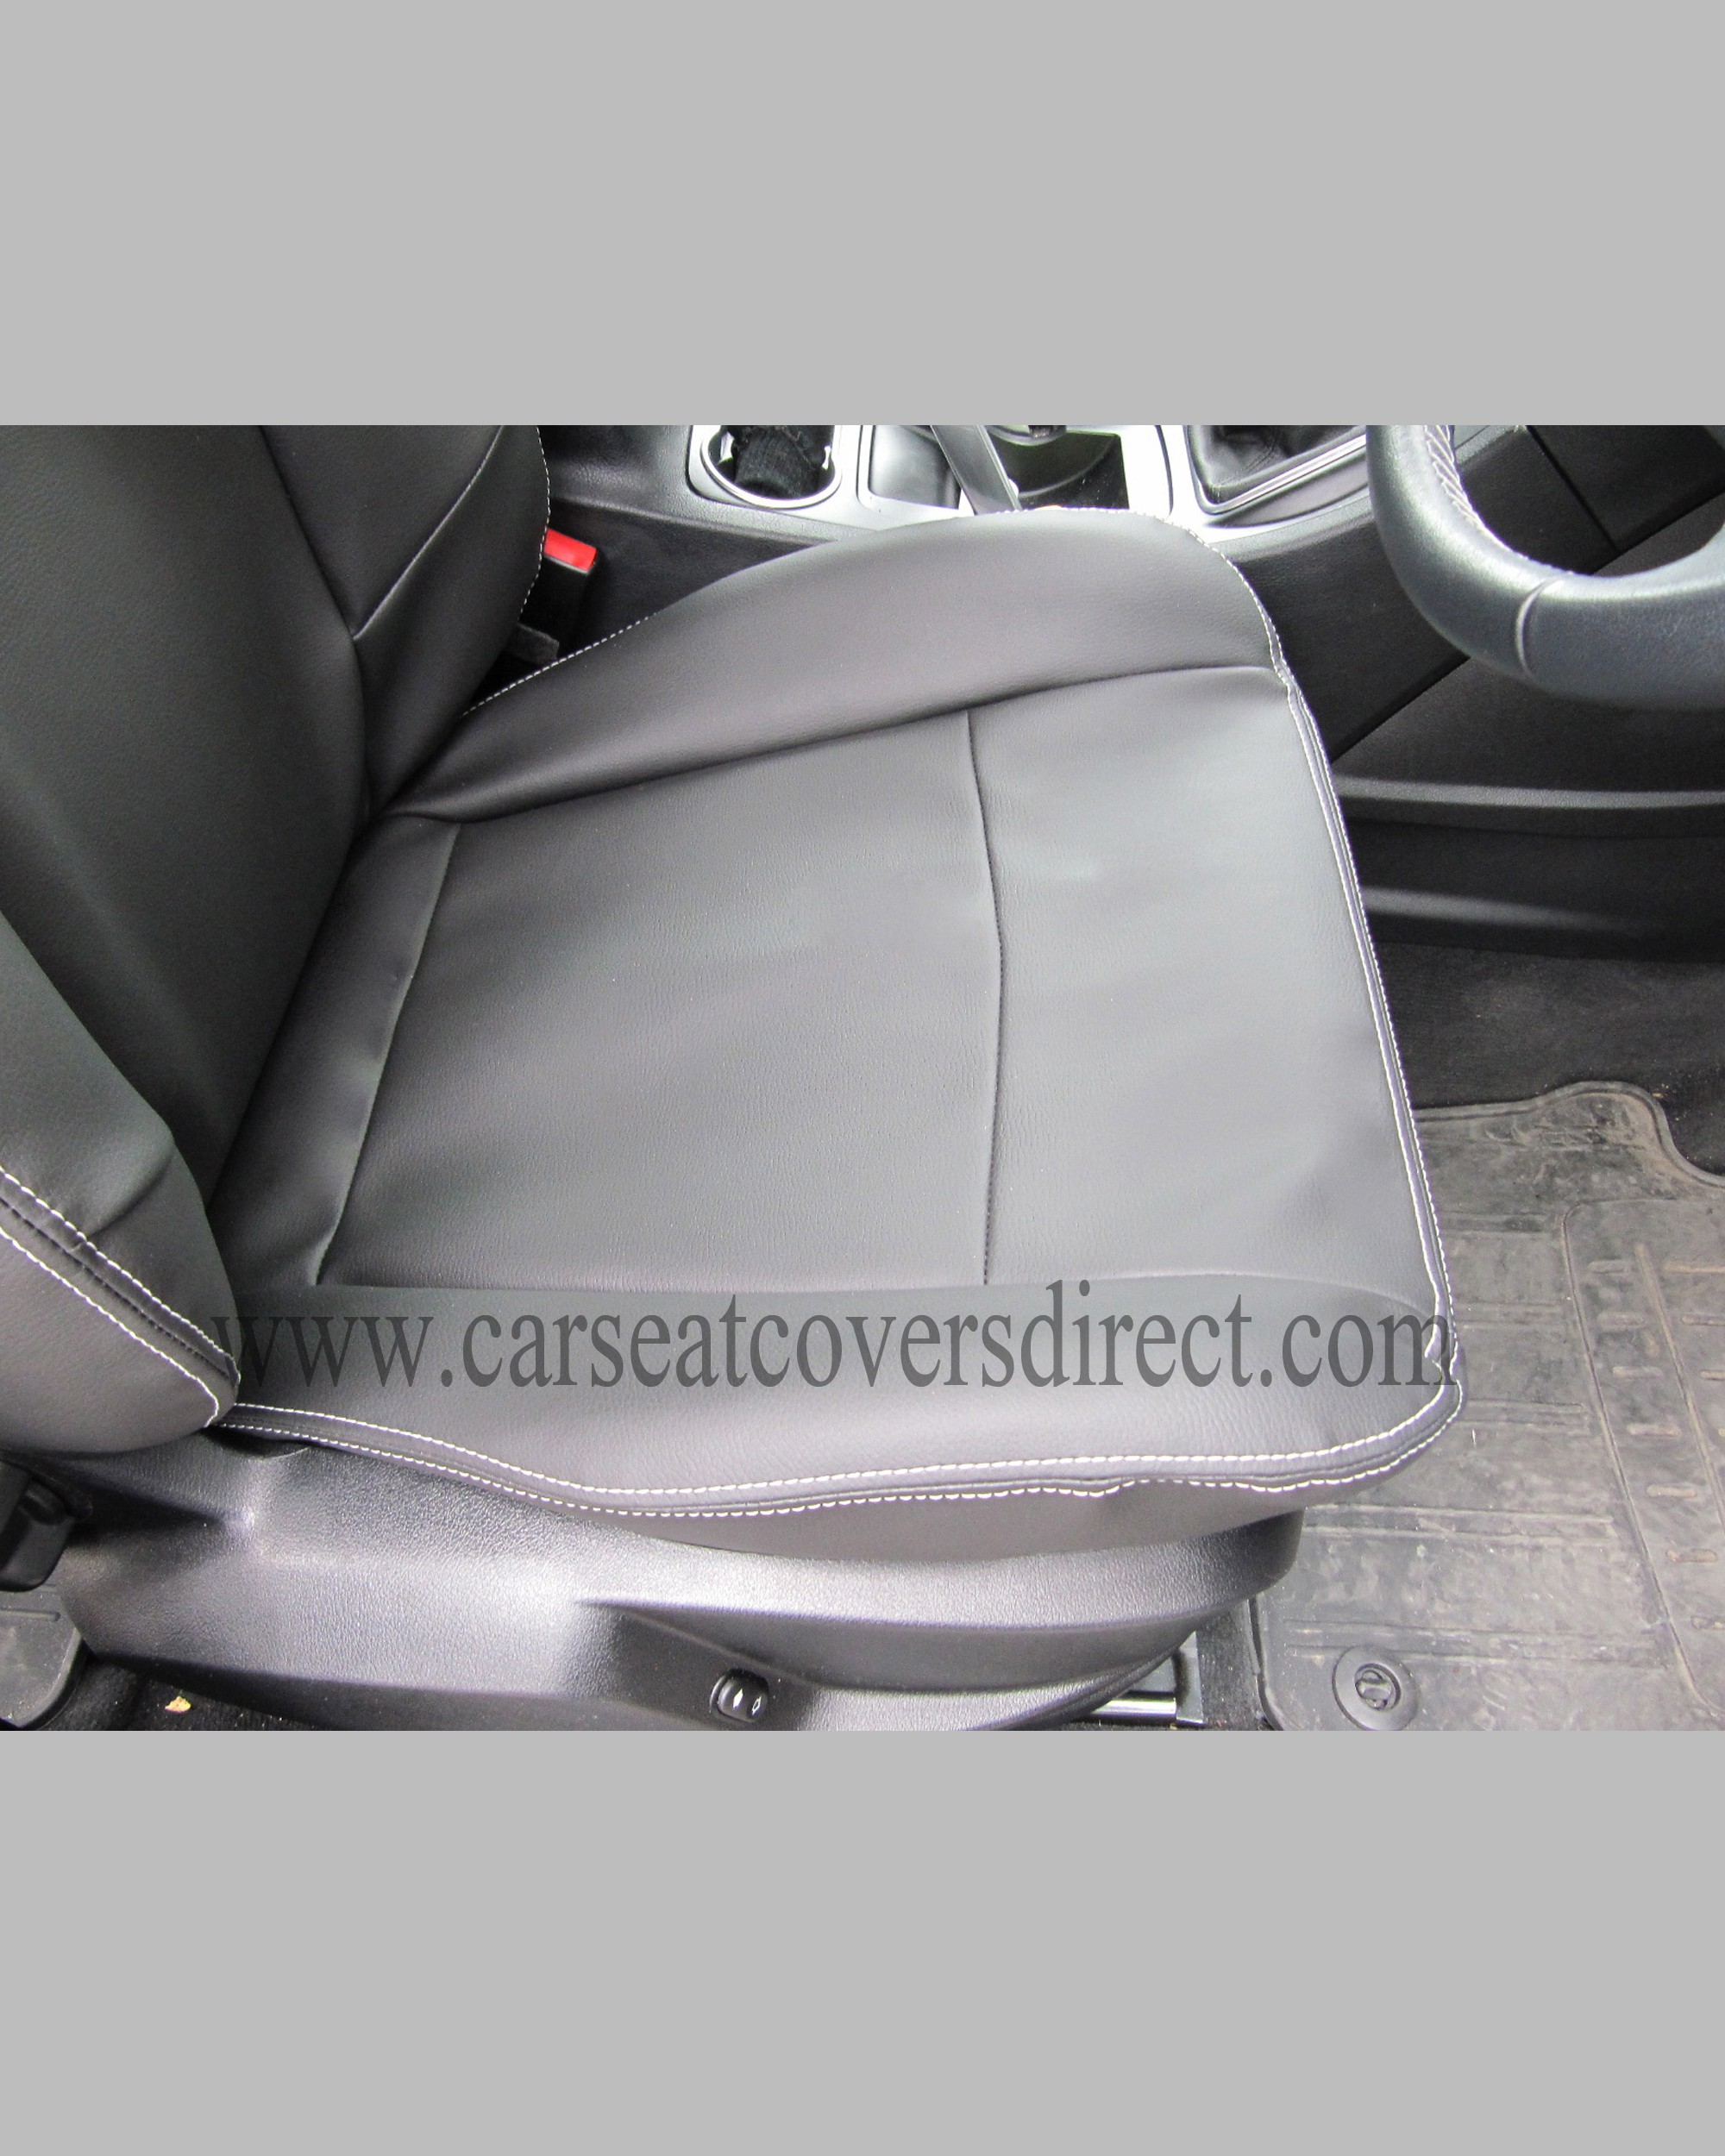 FORD S MAX Seat Covers Car Seat Covers Direct